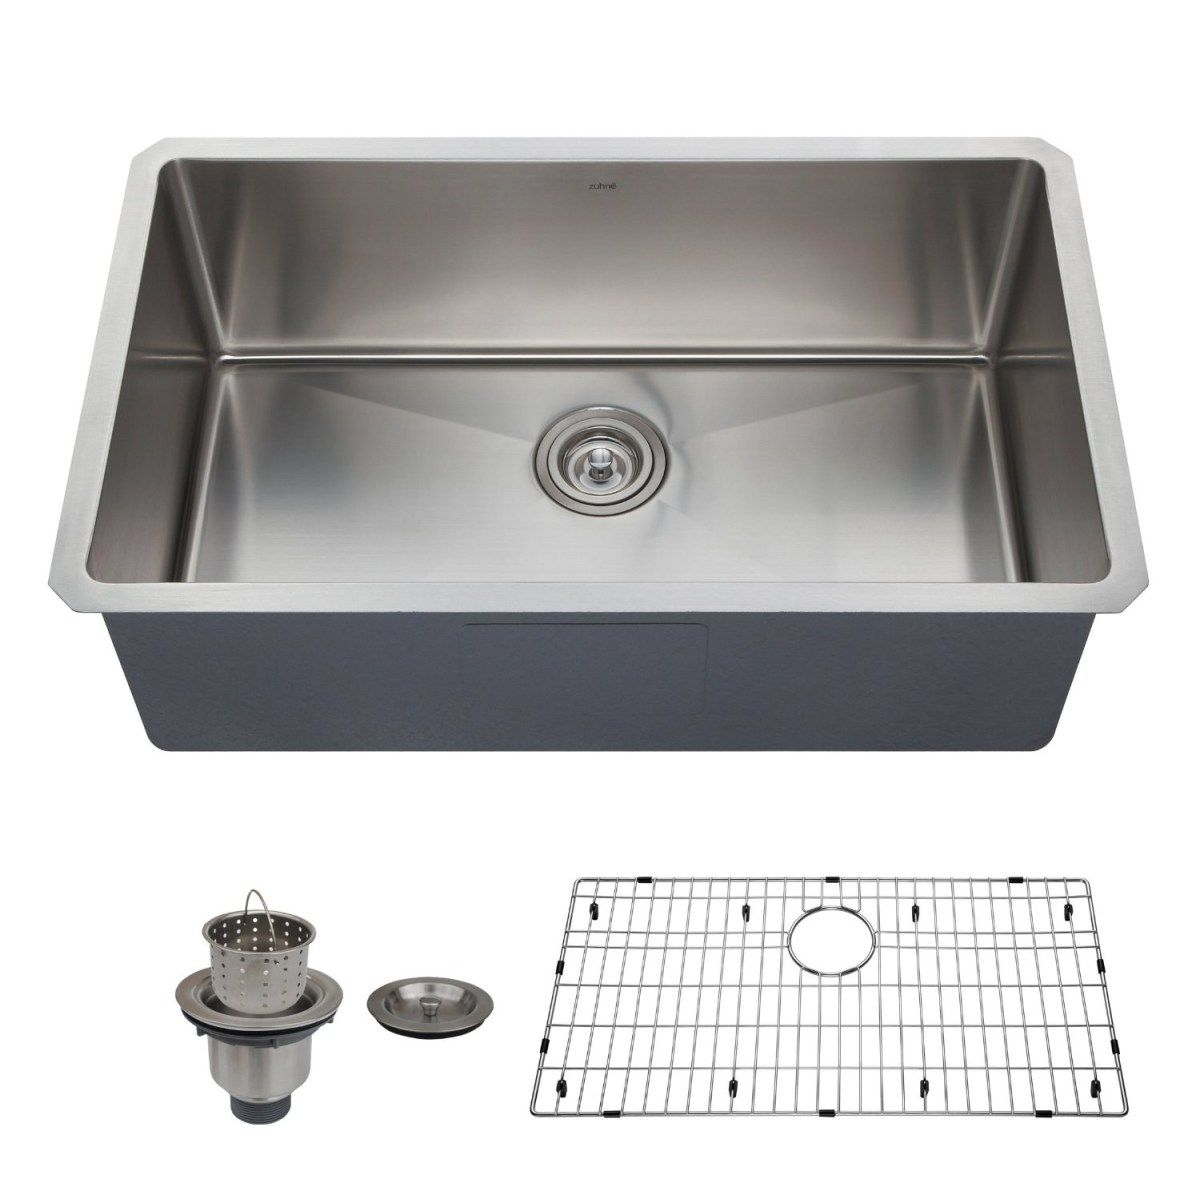 Ceramic Kitchen Sinks Pros And Cons Best Single Bowl Kitchen Sink